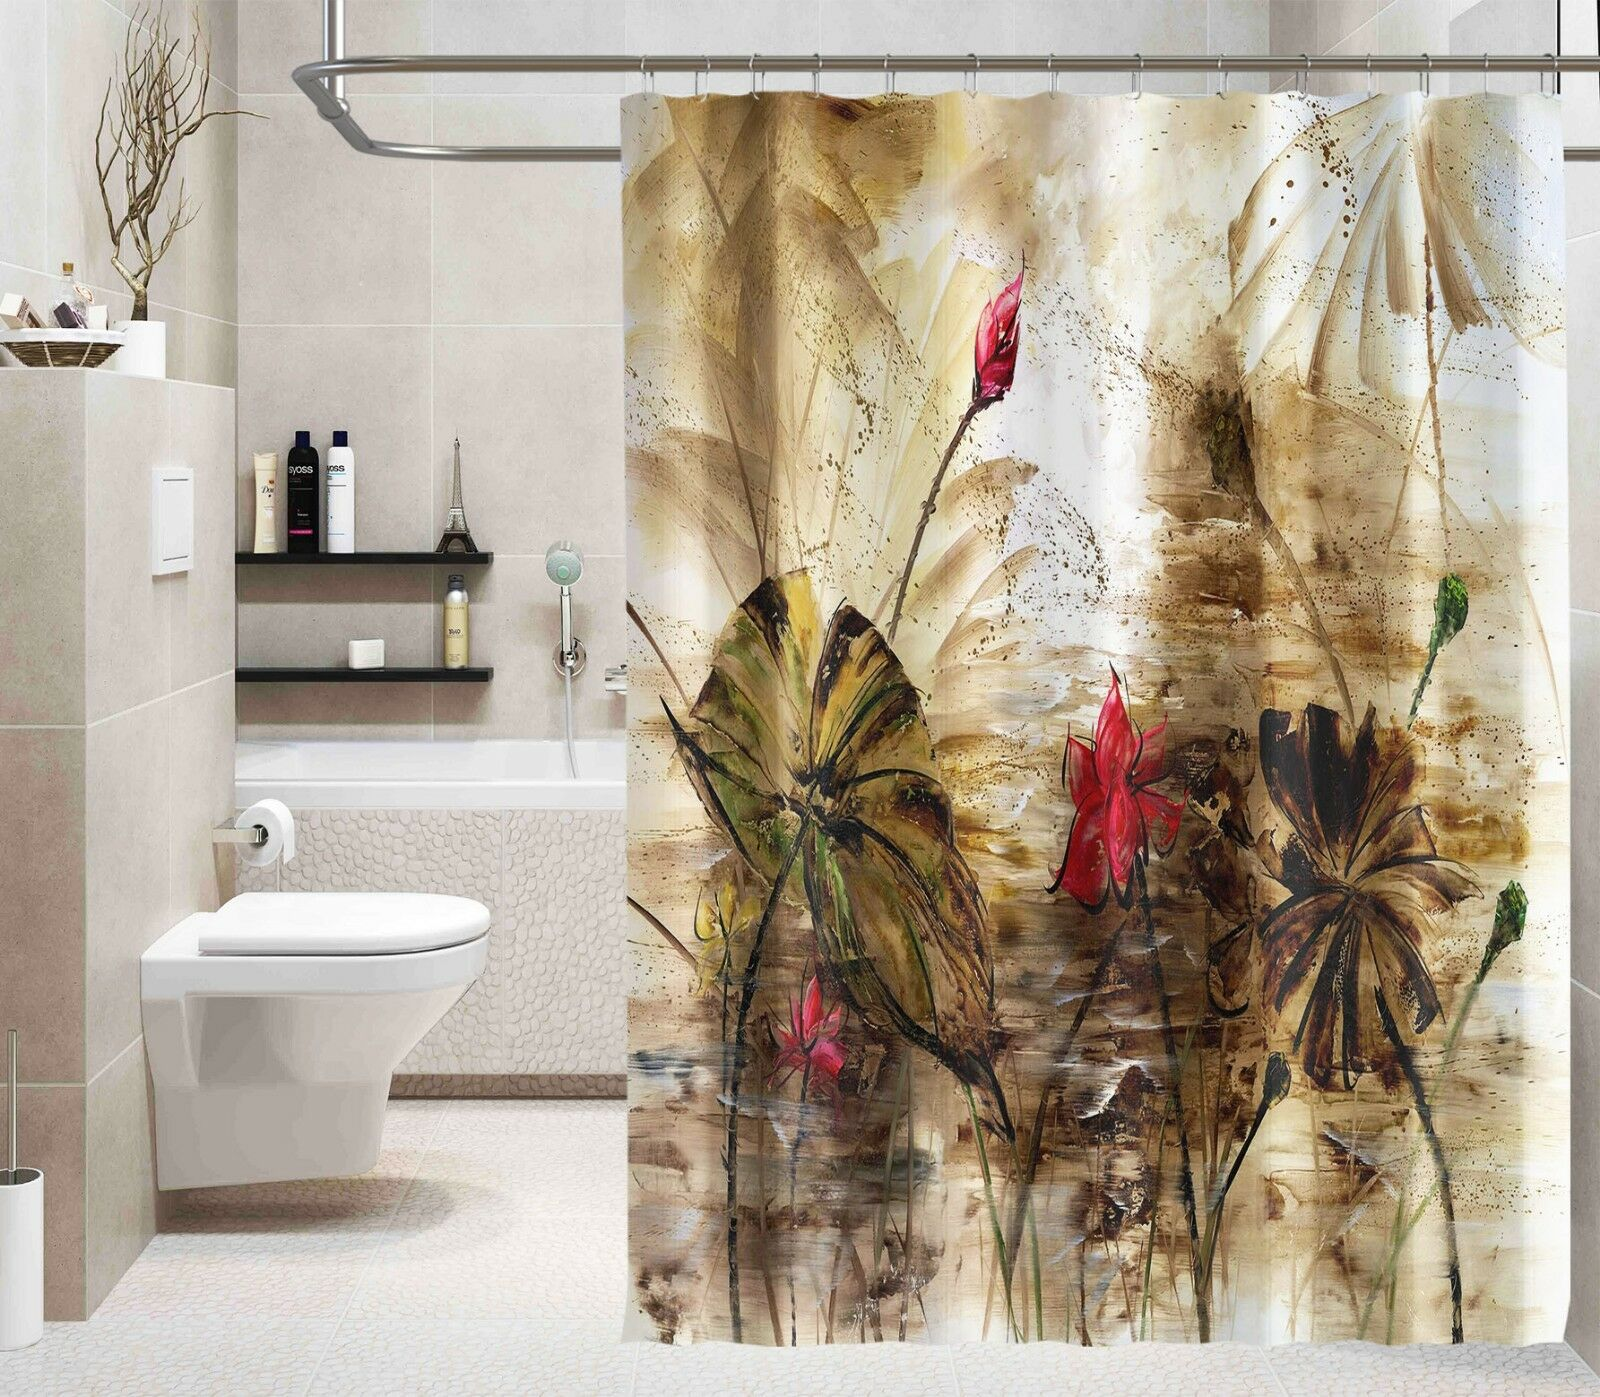 3D Lotus Graffiti 77 Shower Curtain Waterproof Fiber Bathroom Windows Toilet Ca5149